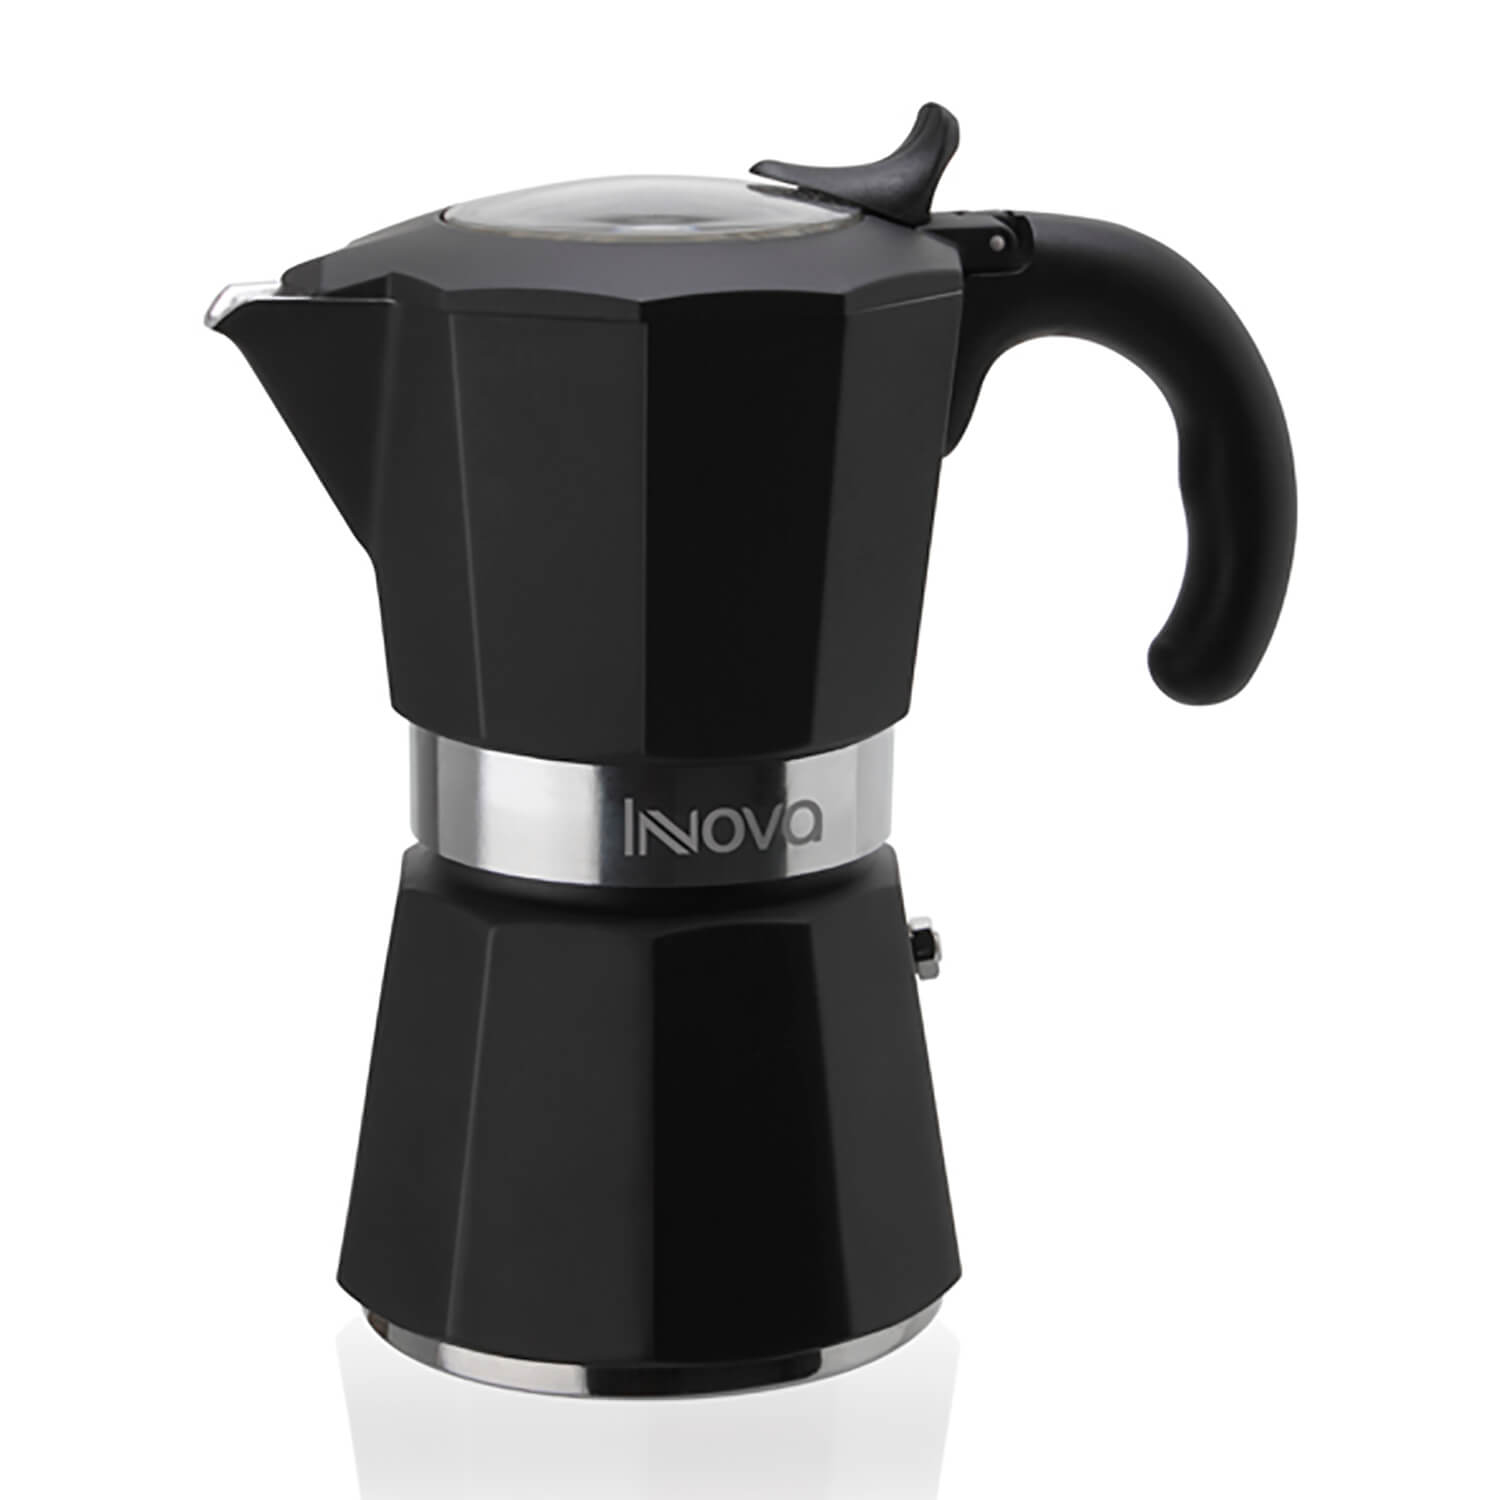 Miss Innova espressokande – sort – 6 kopper